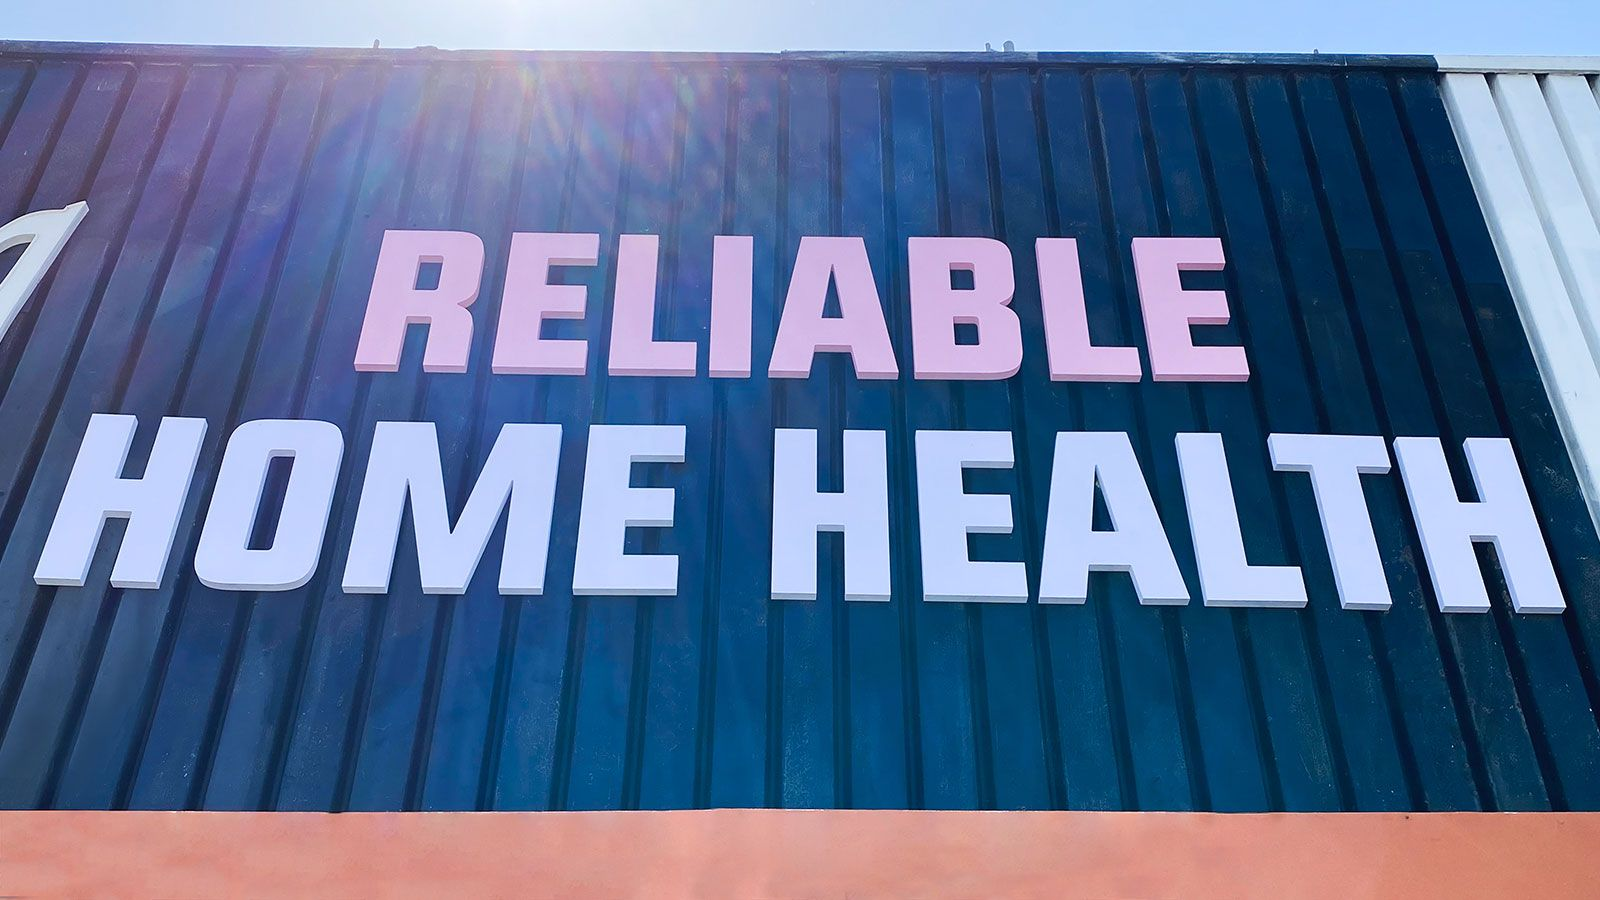 Reliable home health 3D sign